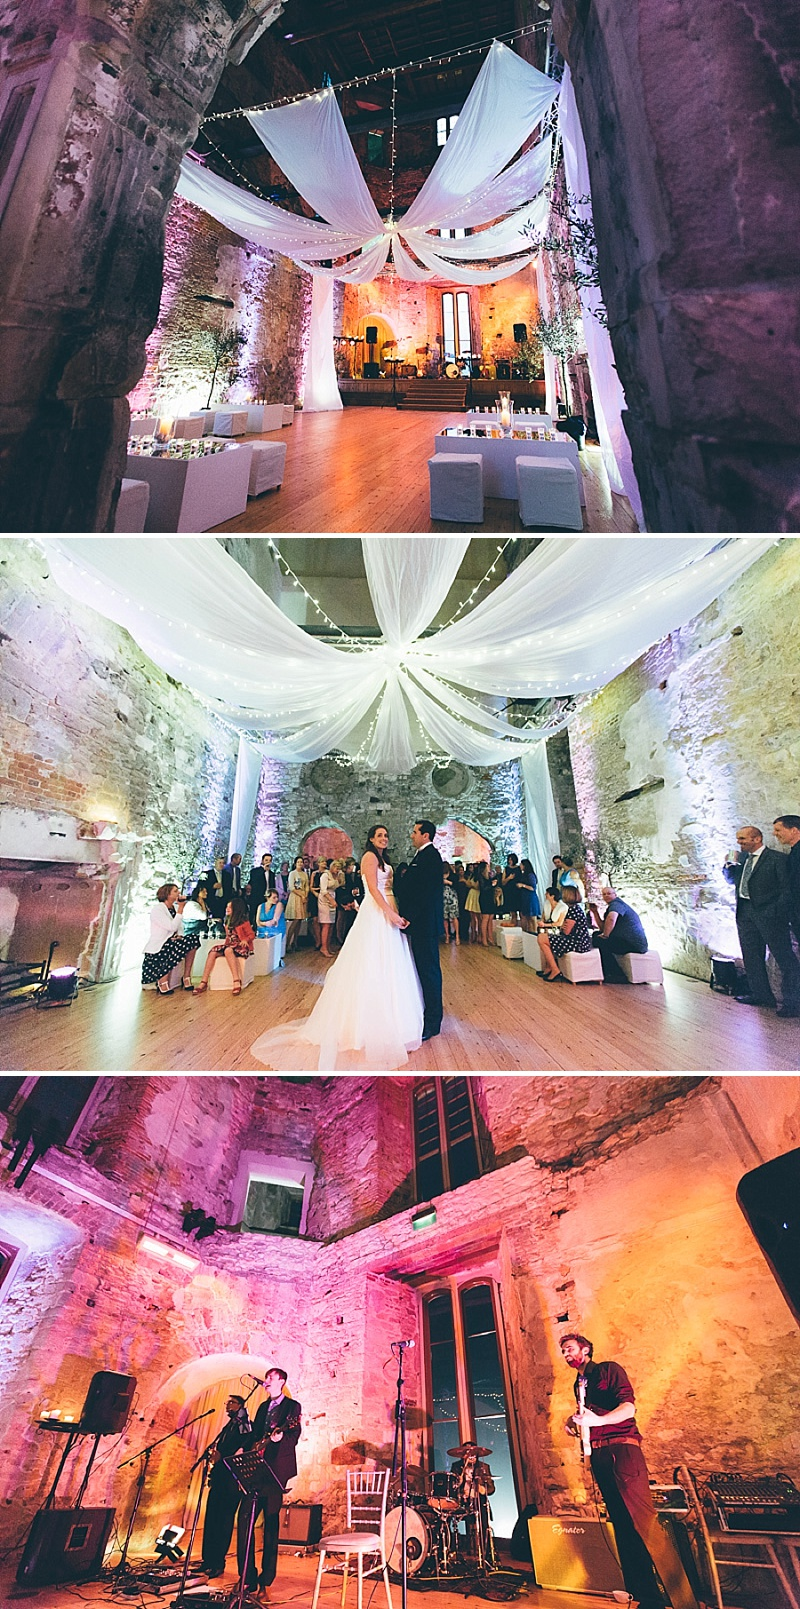 Elegant Wedding At Lulworth Castle In Dorset With Bride In Heidi By Sassi Holford And Bridesmaids In Dessy With Accessories From Glitzy Secrets And Groom In Suit By Austin Reed With Images From Dorset Wedding Photographer Paul Underhill 9